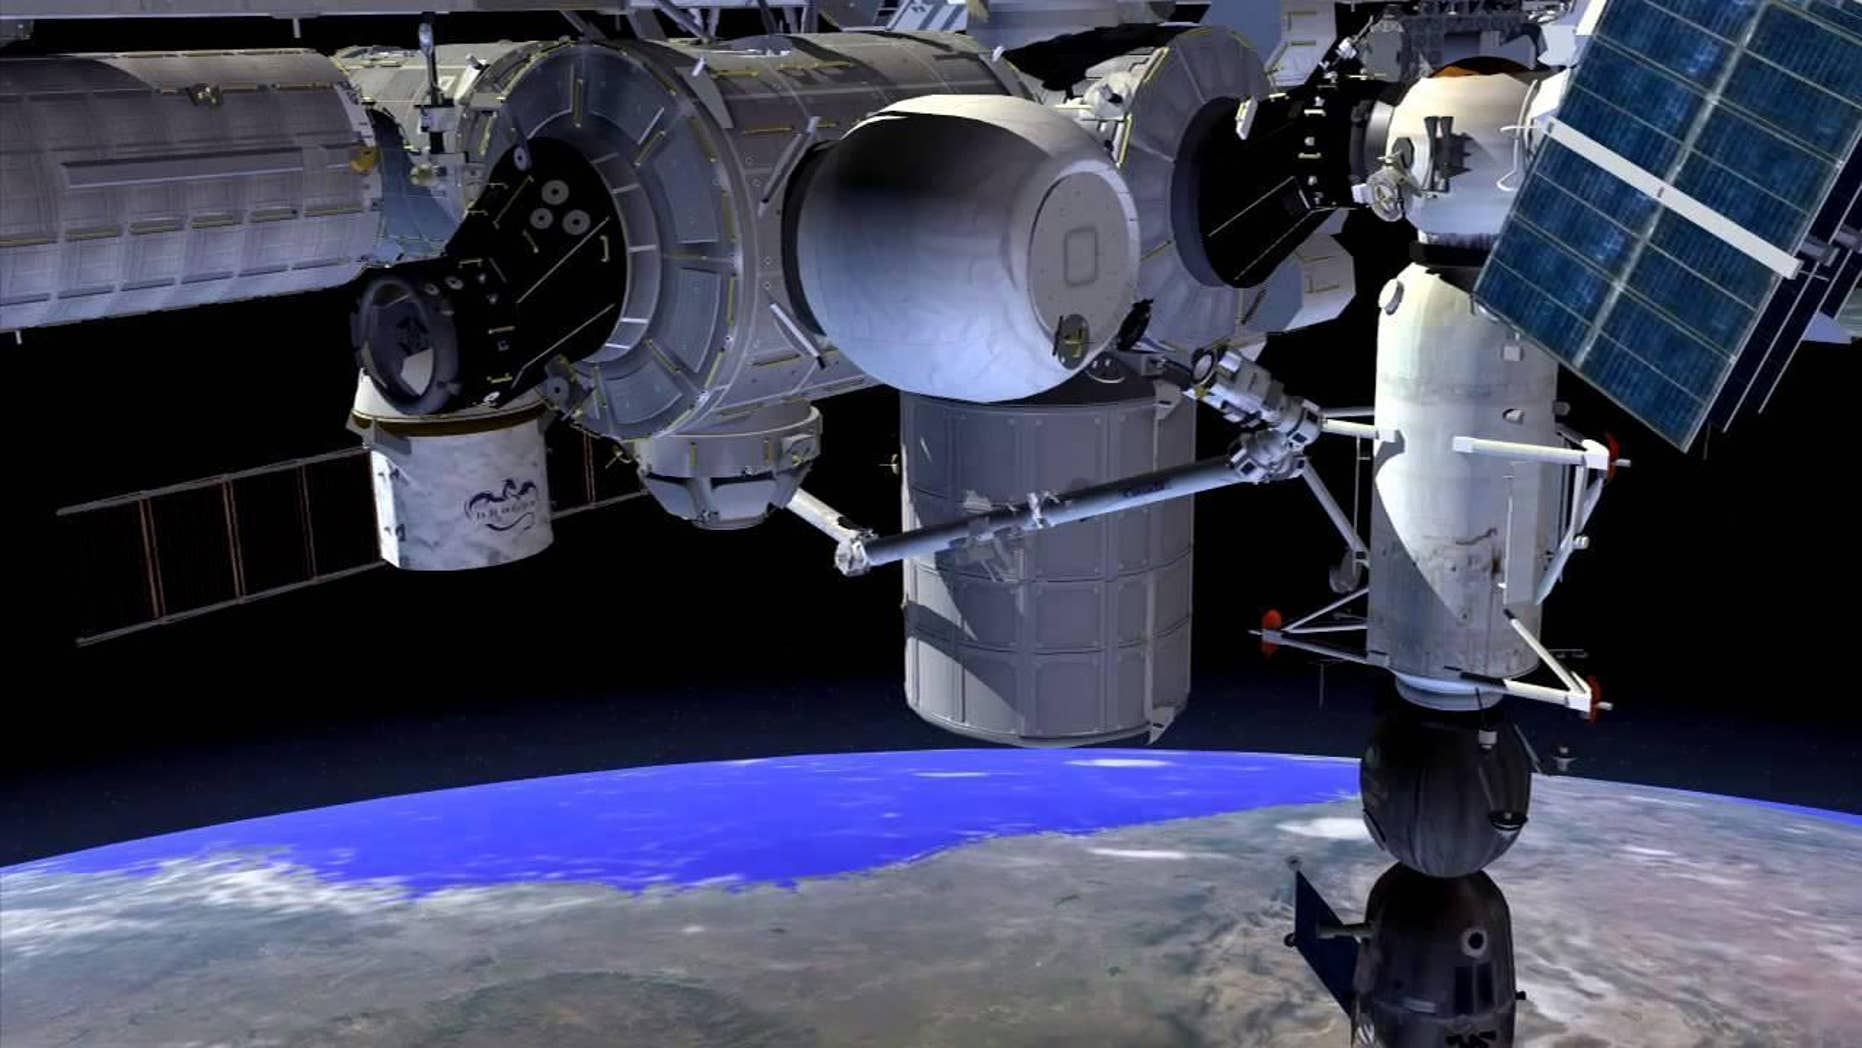 Artist's impression - Inflated BEAM module (balloon structure at top center) berthed to the Tranquility node of ISS (NASA).